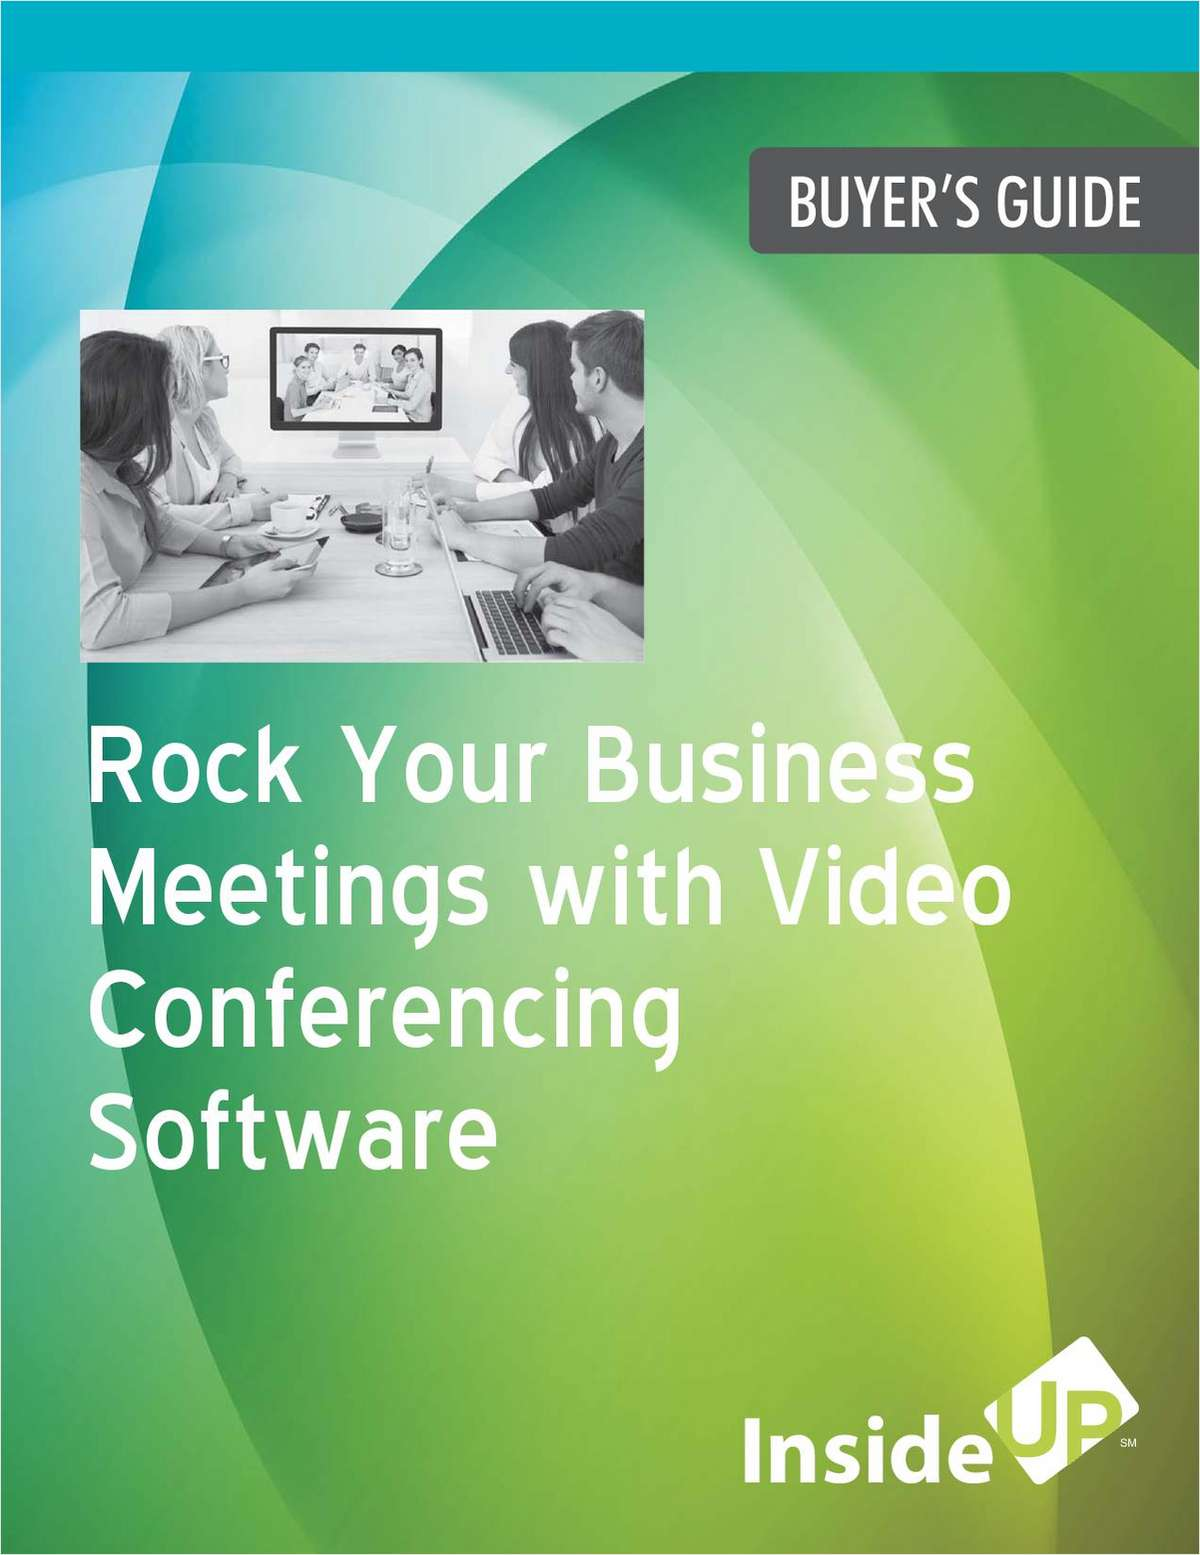 Rock Your Business Meetings with Video Conferencing Software